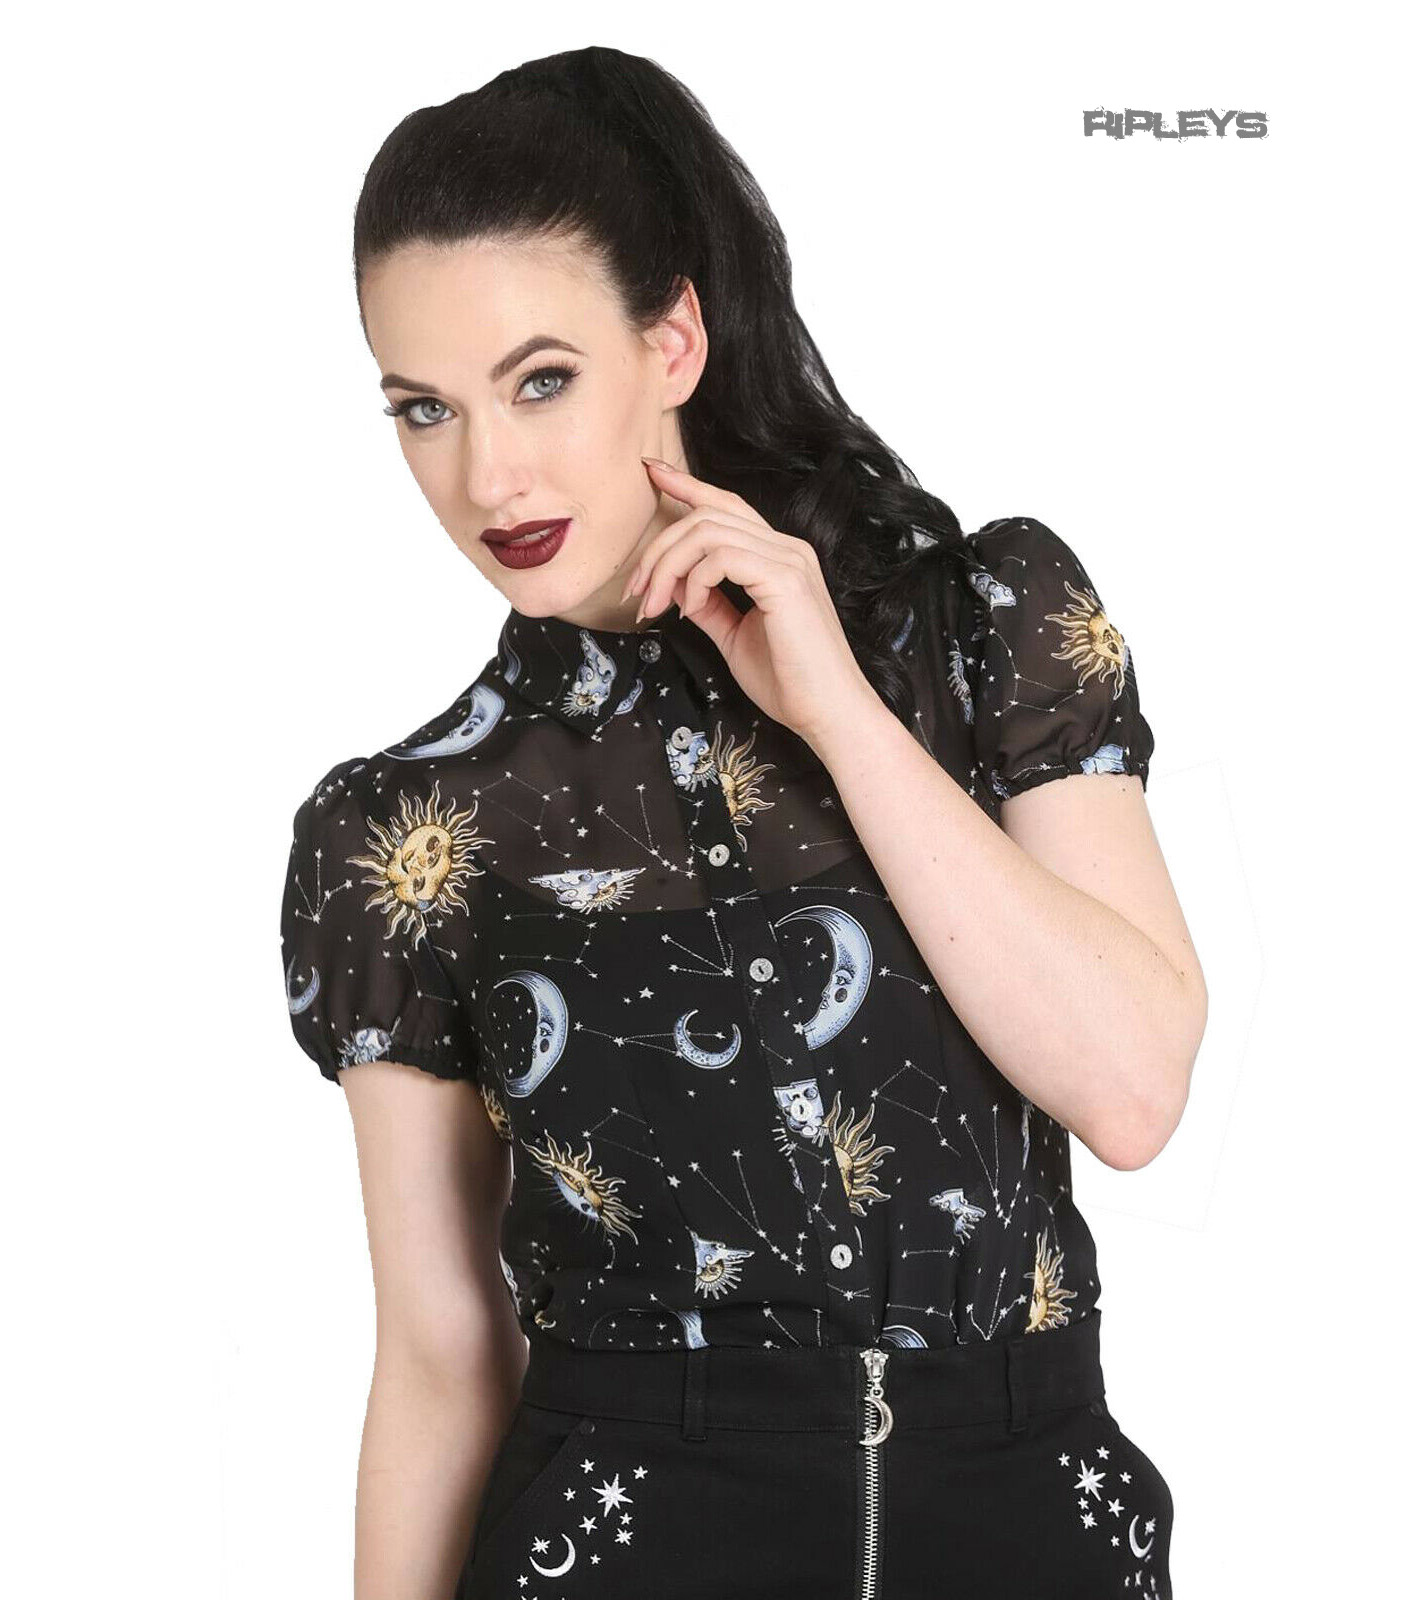 Hell-Bunny-50s-Shirt-Top-Gothic-Black-Sun-Moon-Stars-SOLARIS-Blouse-All-Sizes thumbnail 32